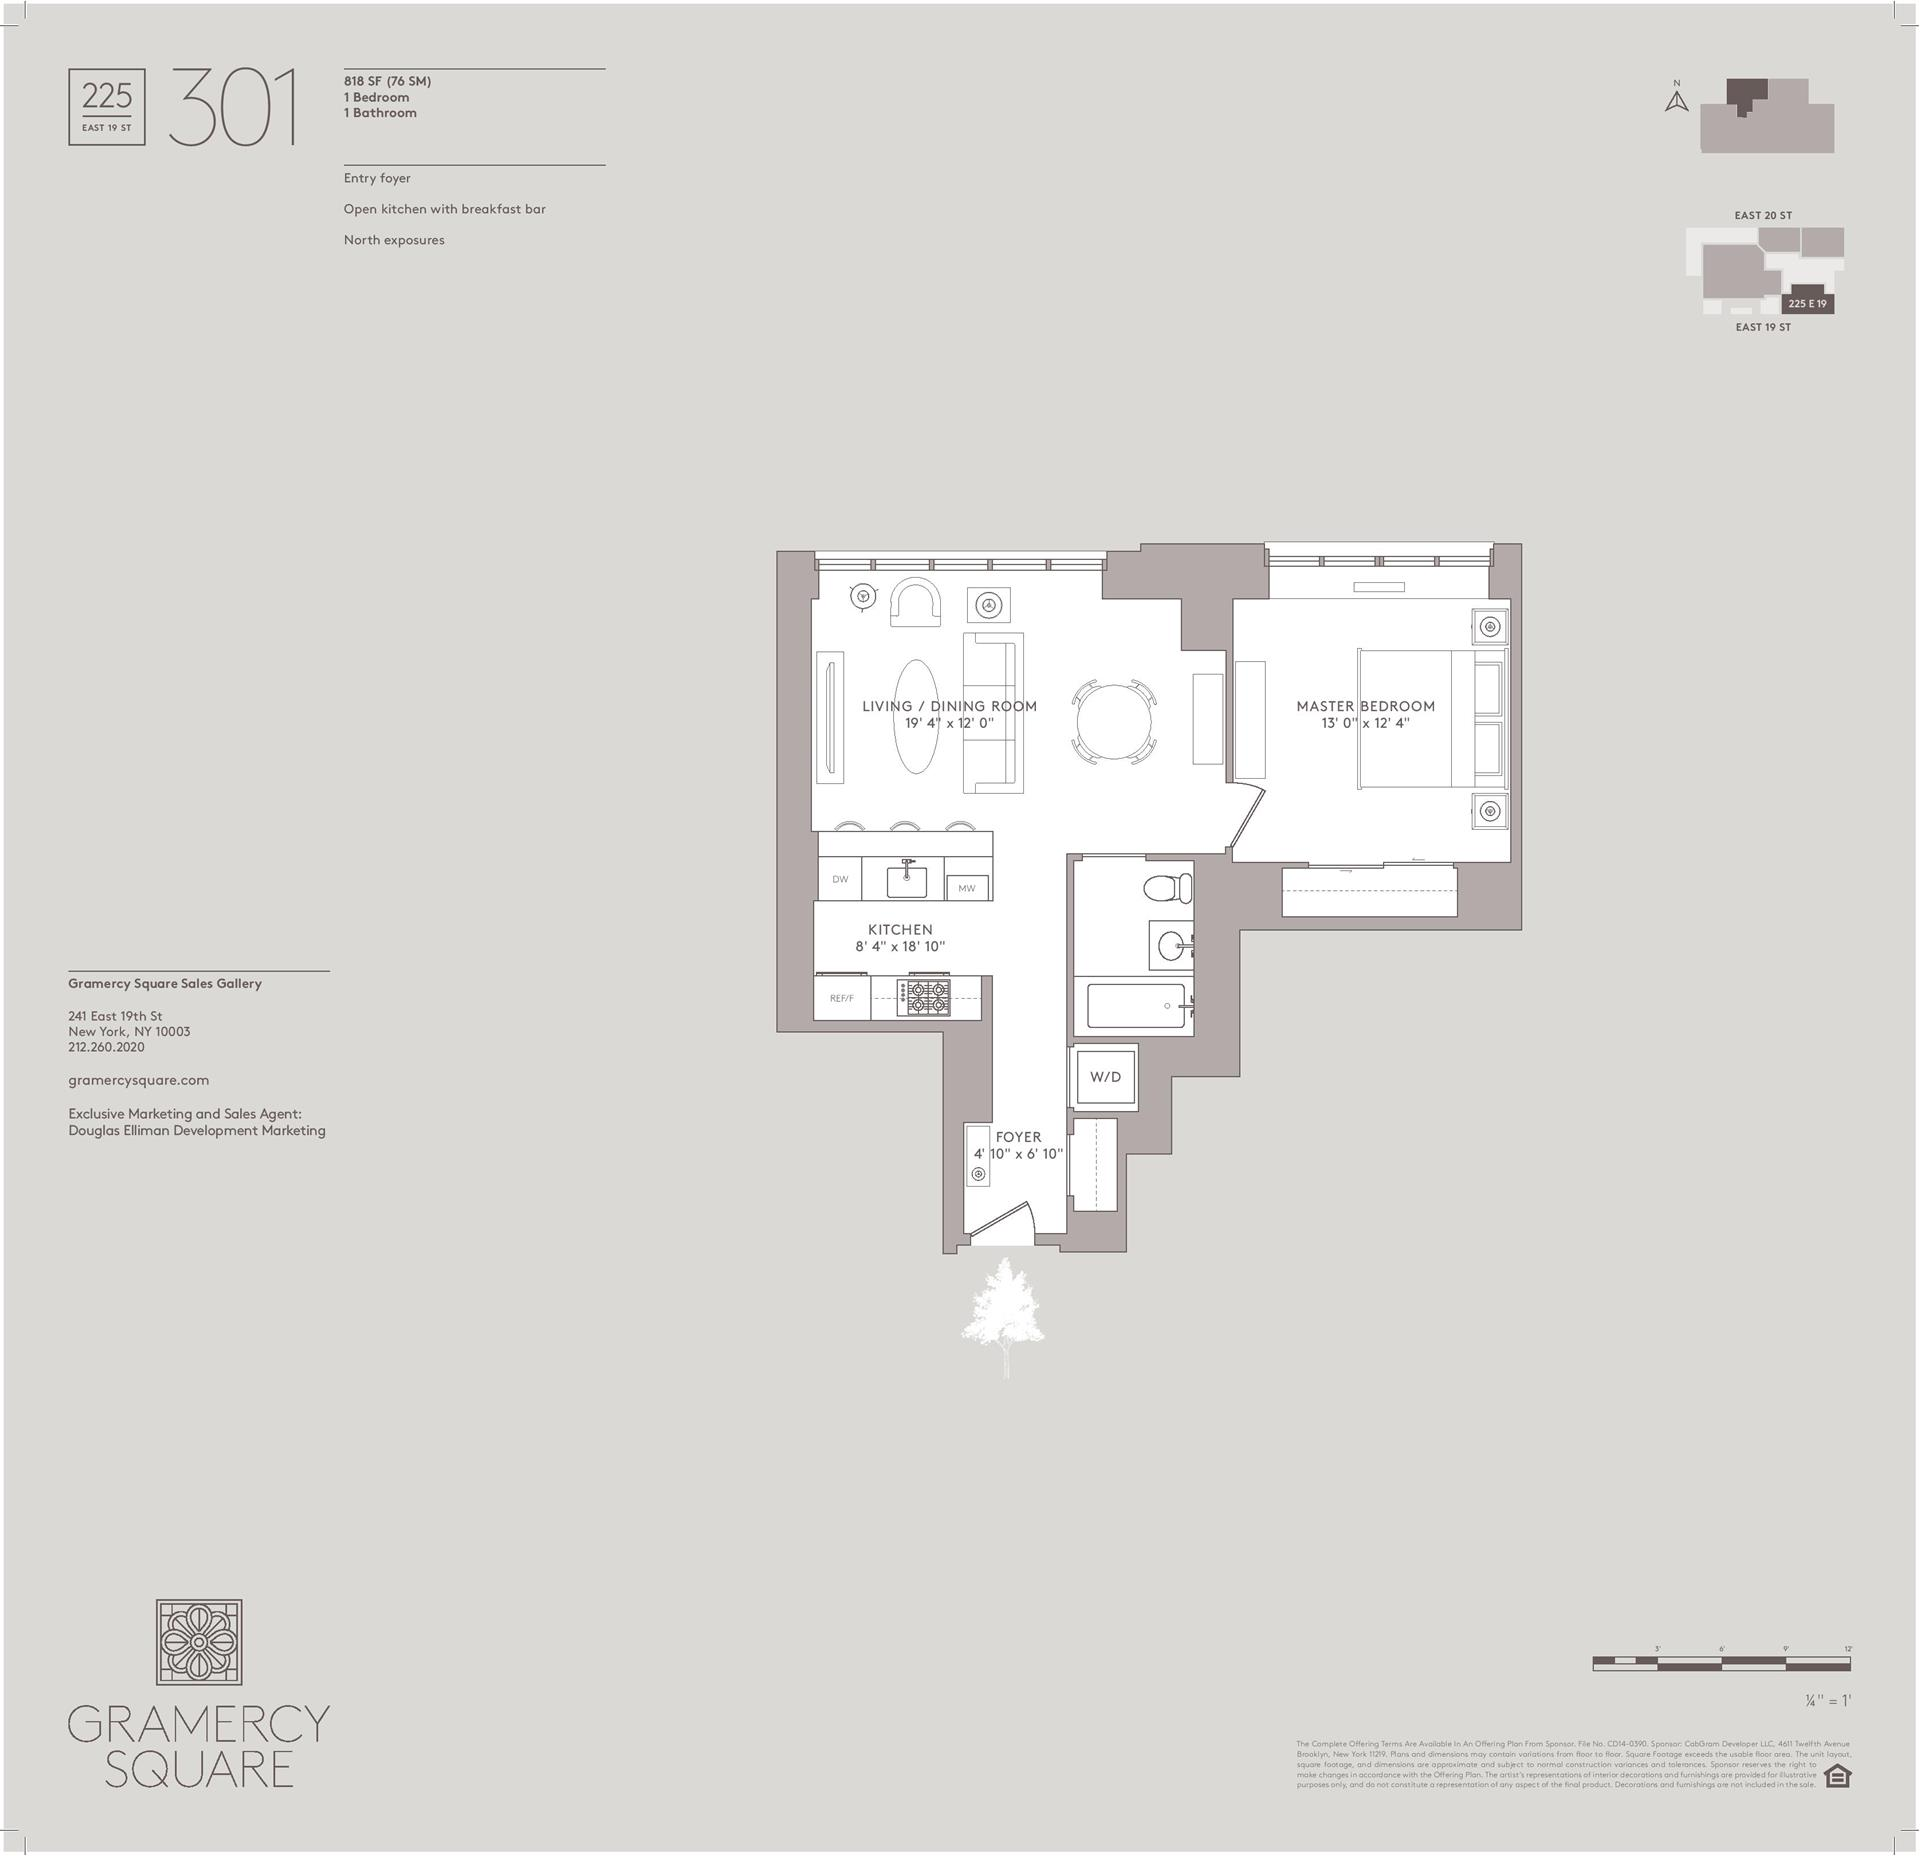 Floor plan of Gramercy Square, 225 East 19th St, 301 - Gramercy - Union Square, New York